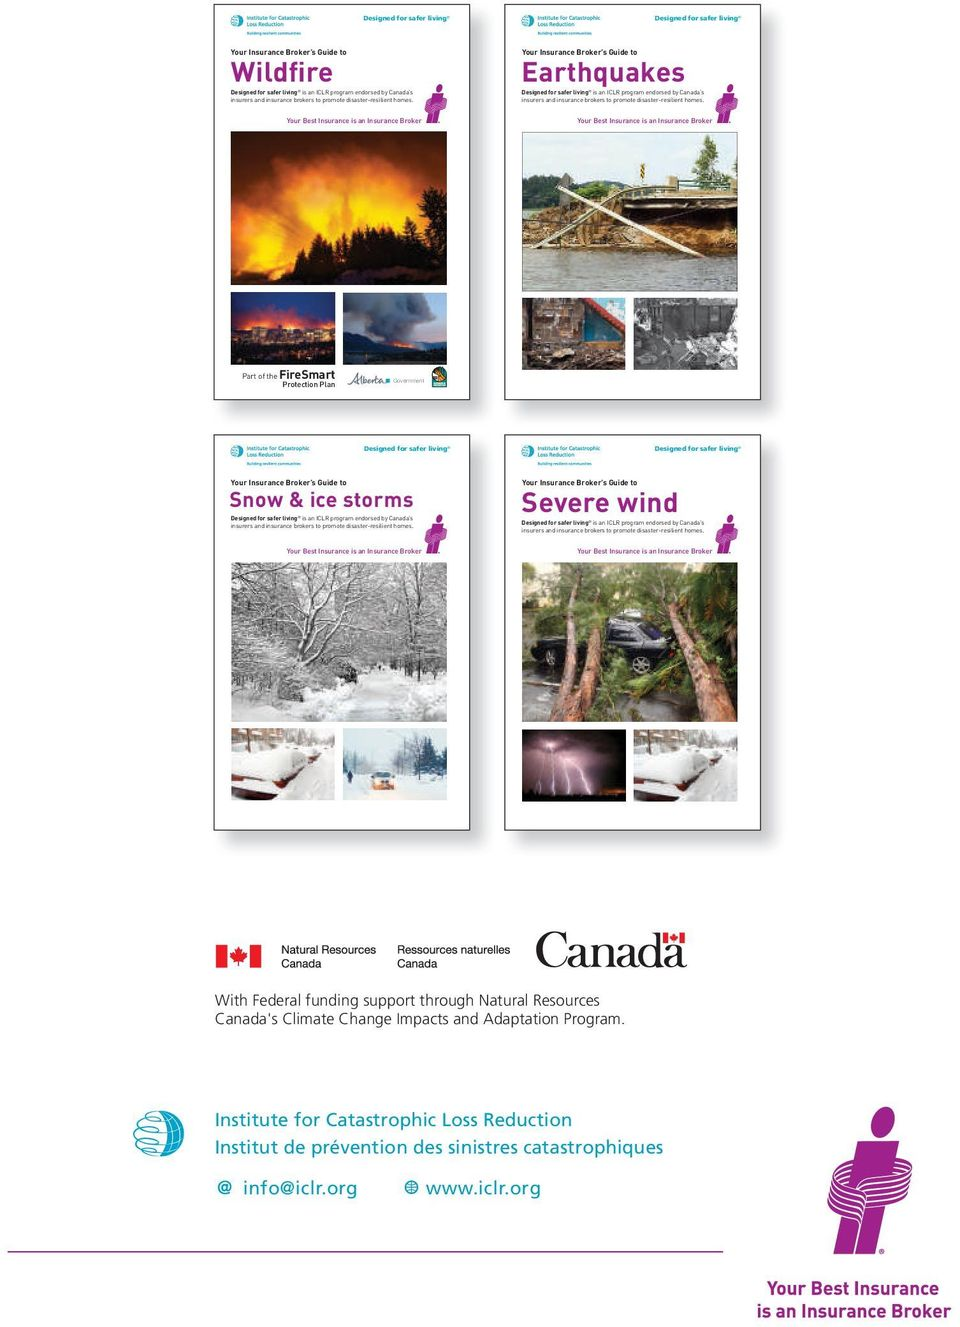 org ICLR-SL Earthquake Covers Only E-D2_x 2012-Jan-21 2:13 PM Page 1 Your Insurance Broker s Guide to Wildfire Wildfire Designed for safer living Protection Plan Protection Plan Part of the insurers